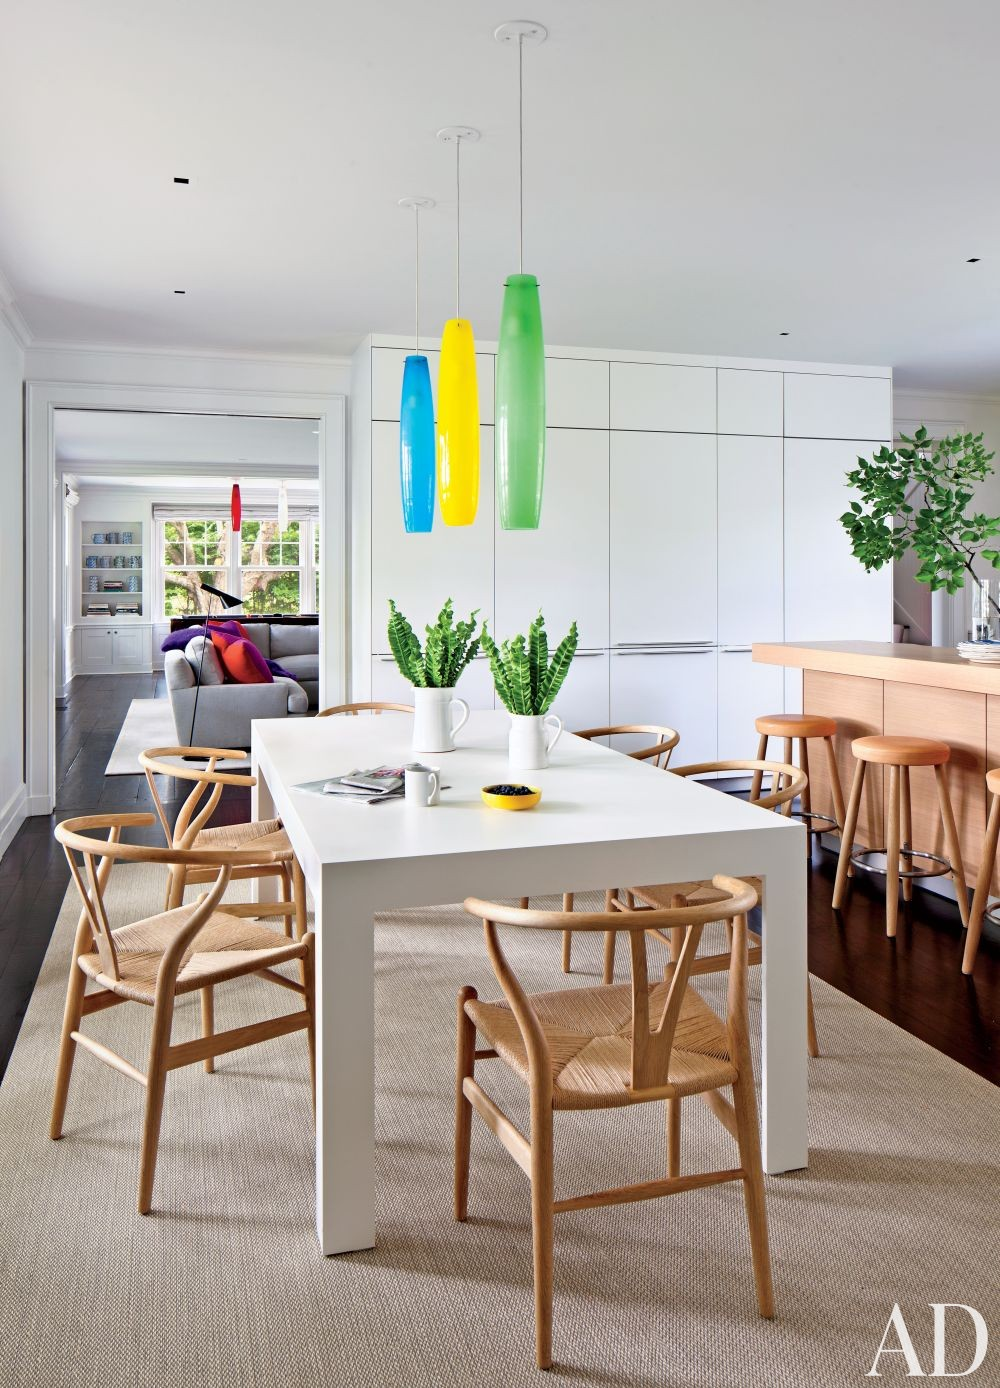 Contemporary Kitchen by Shelton, Mindel & Associates and Robert A.M Stern in East Hampton, New York